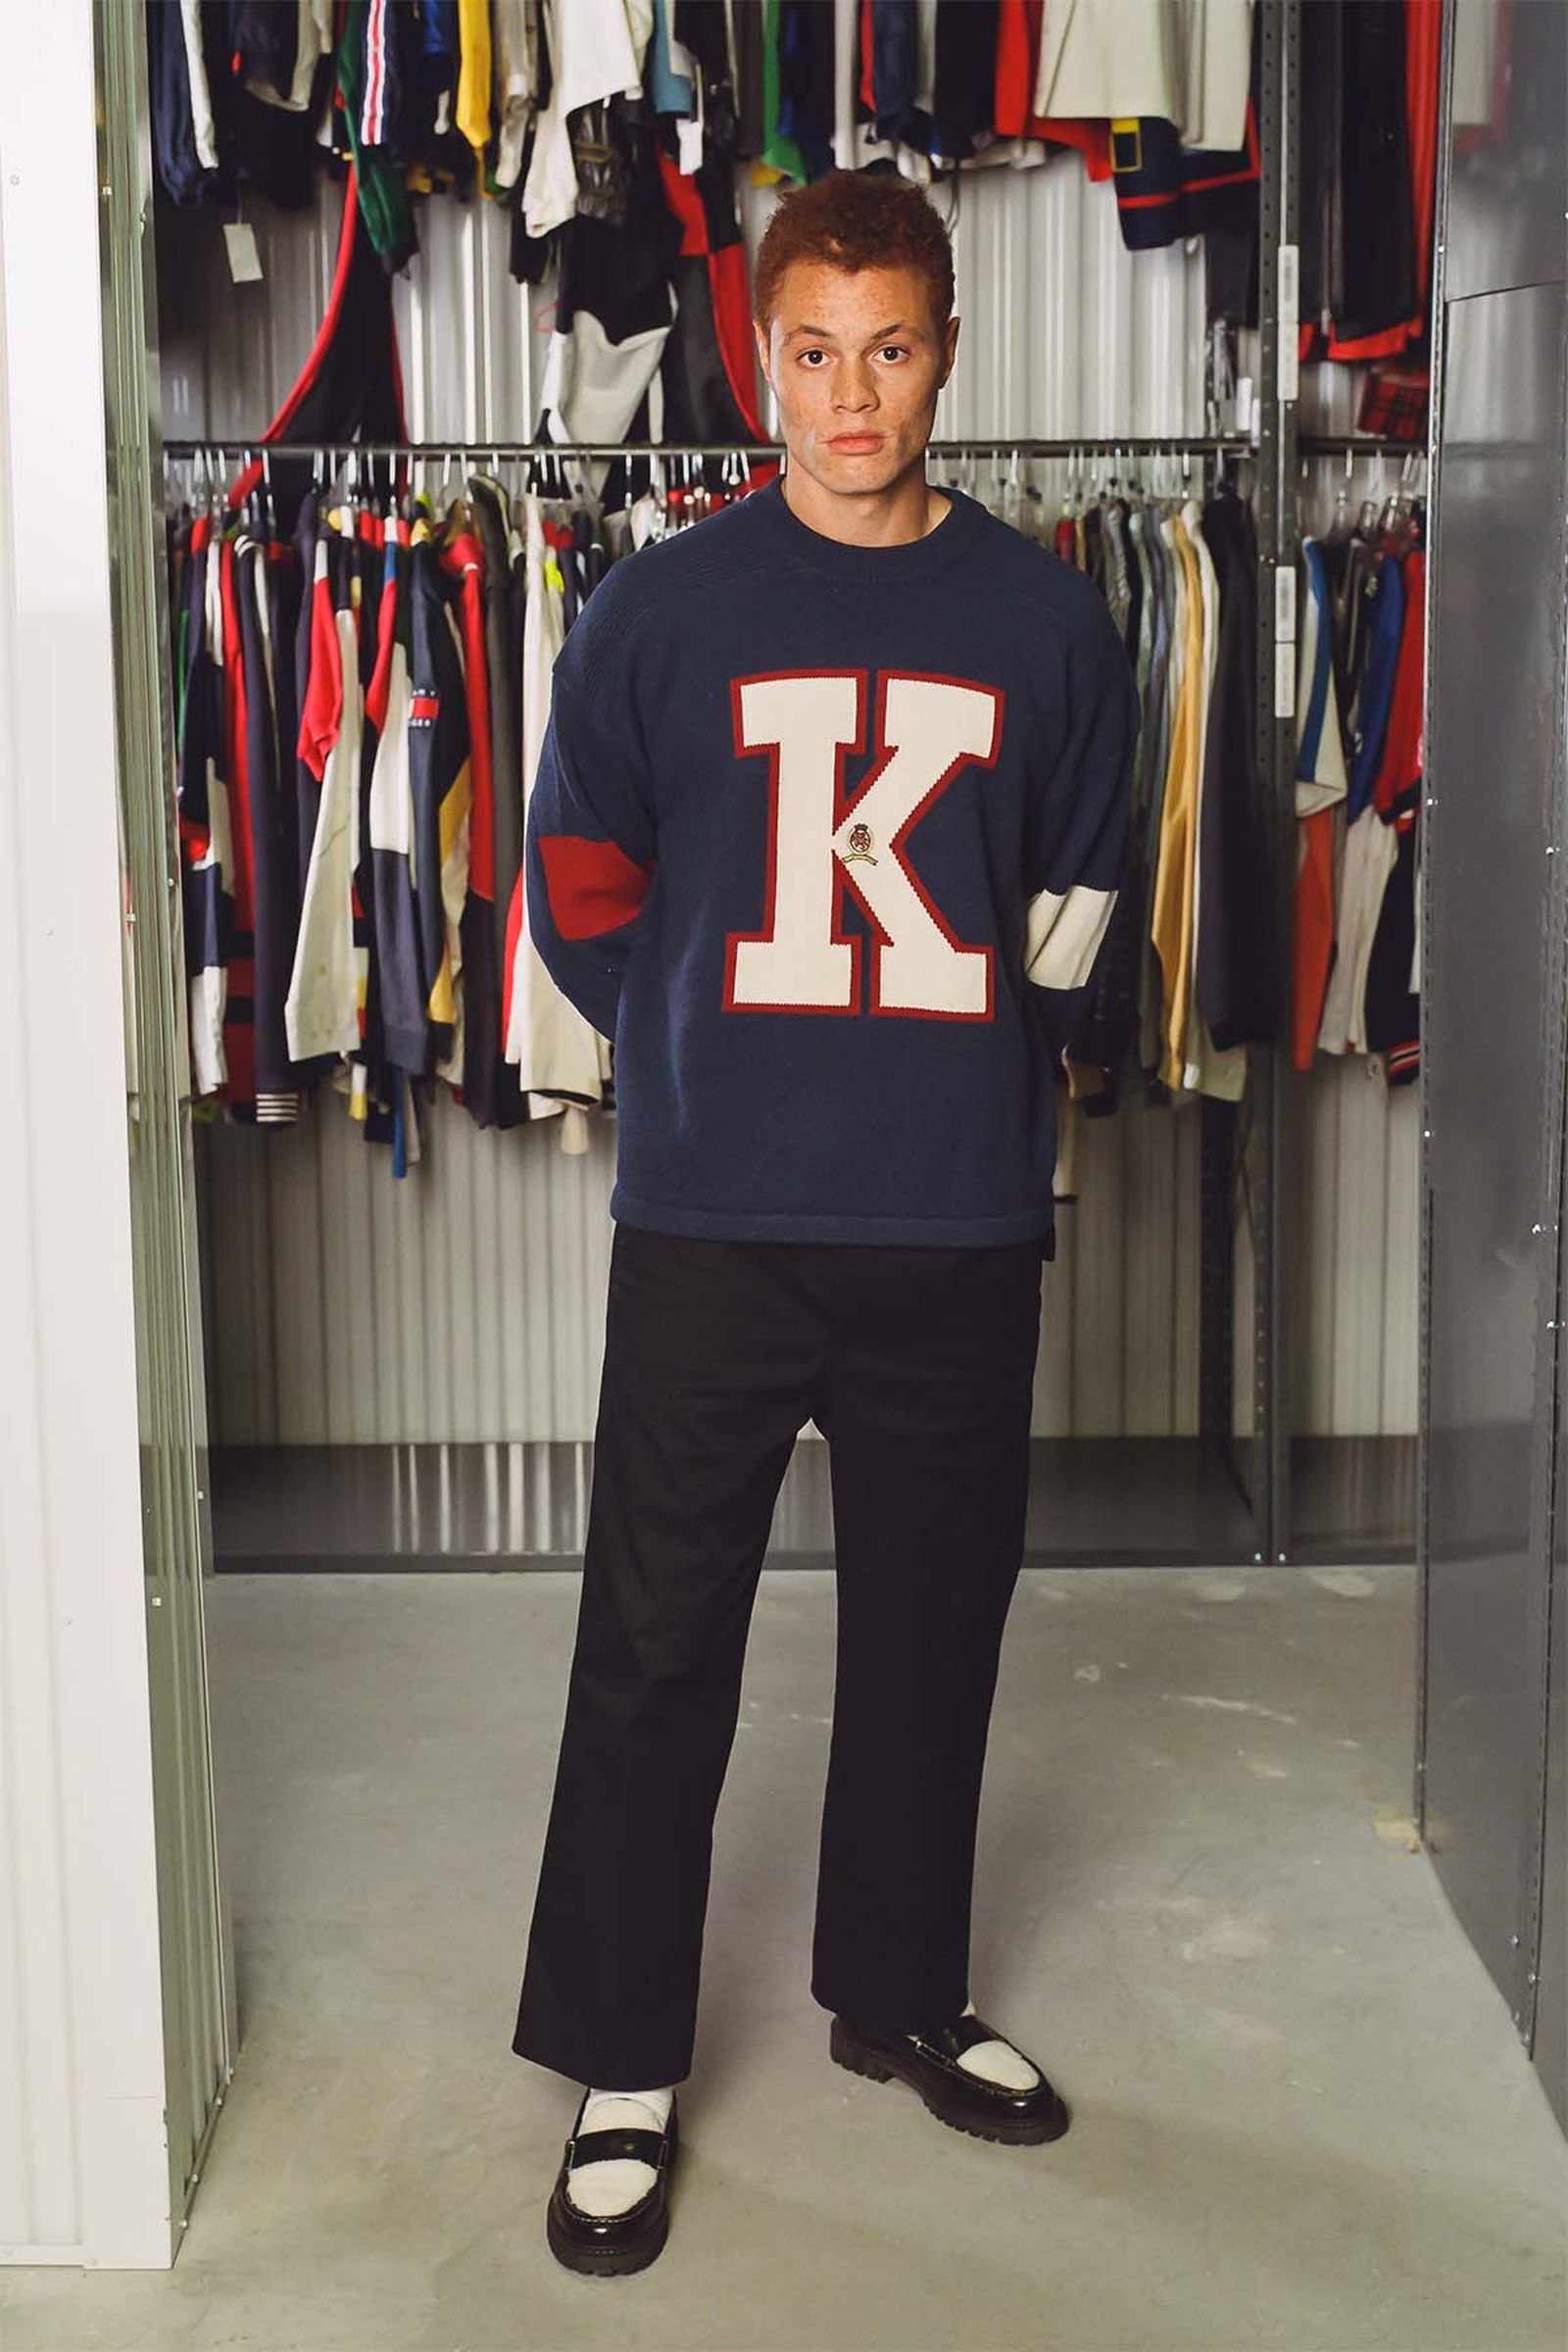 Tommy Hilfiger x KITH Wool Varsity K Sweater (FW18), Hilfiger Collection Men's Relaxed Pleated Chino and Boat Shoes (Fall 2020)